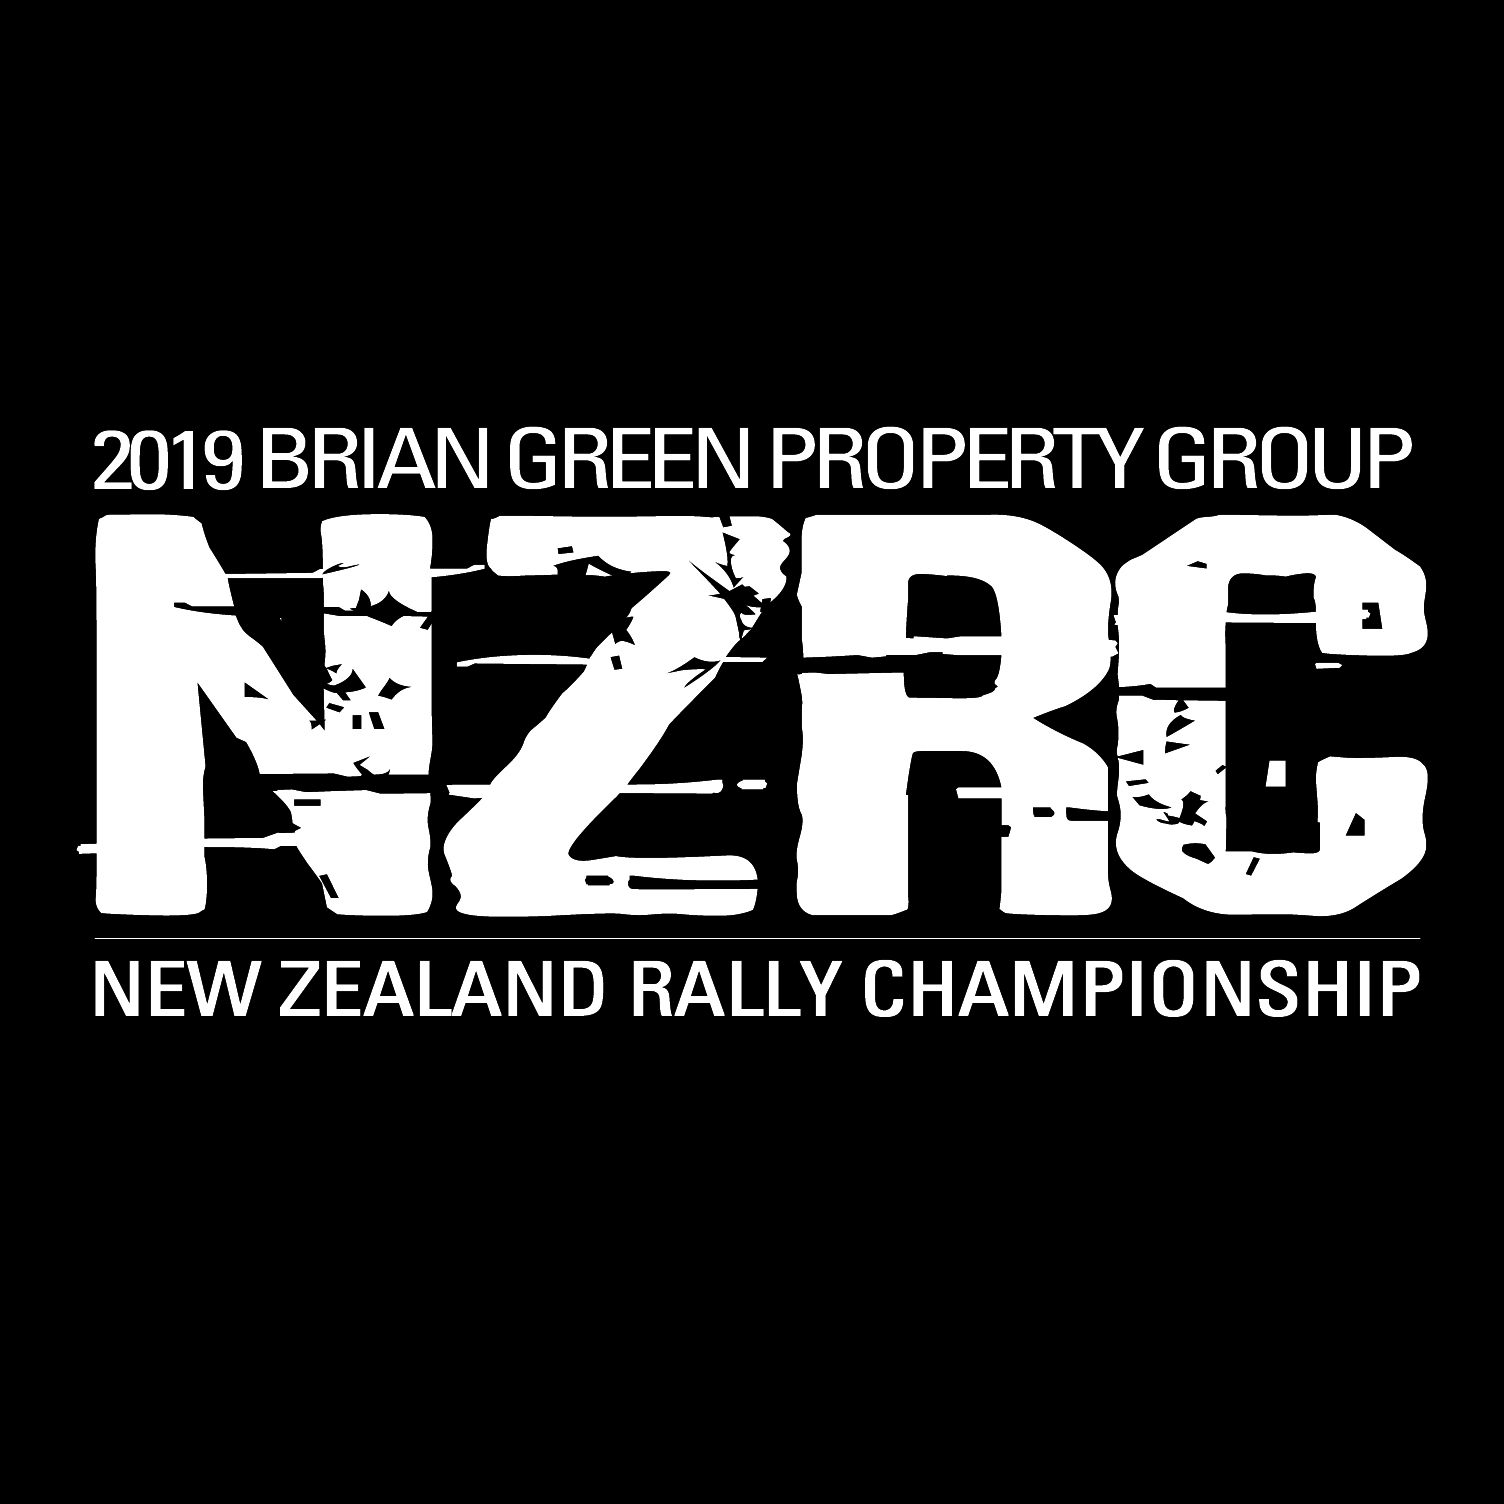 Stadium Finance Rally South Canterbury a big success | :: Brian Green Property Group New Zealand Rally Championship ::